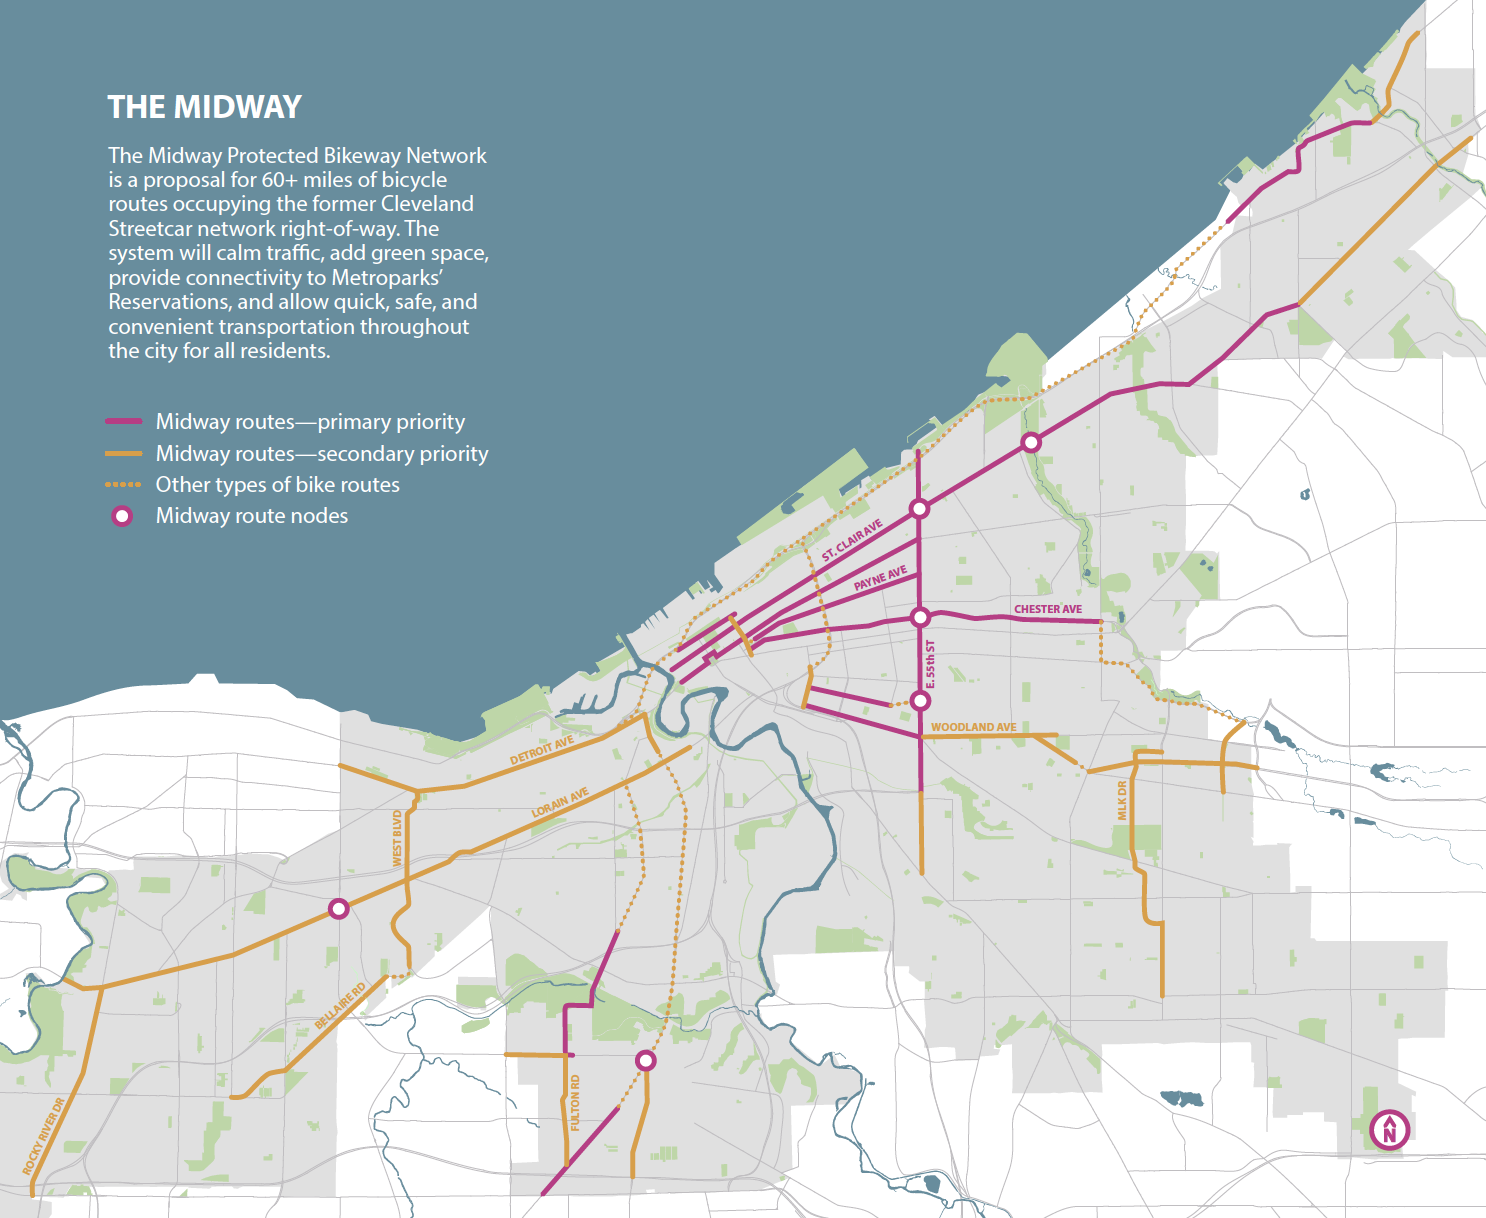 Midway Protected Bikeway Network Map